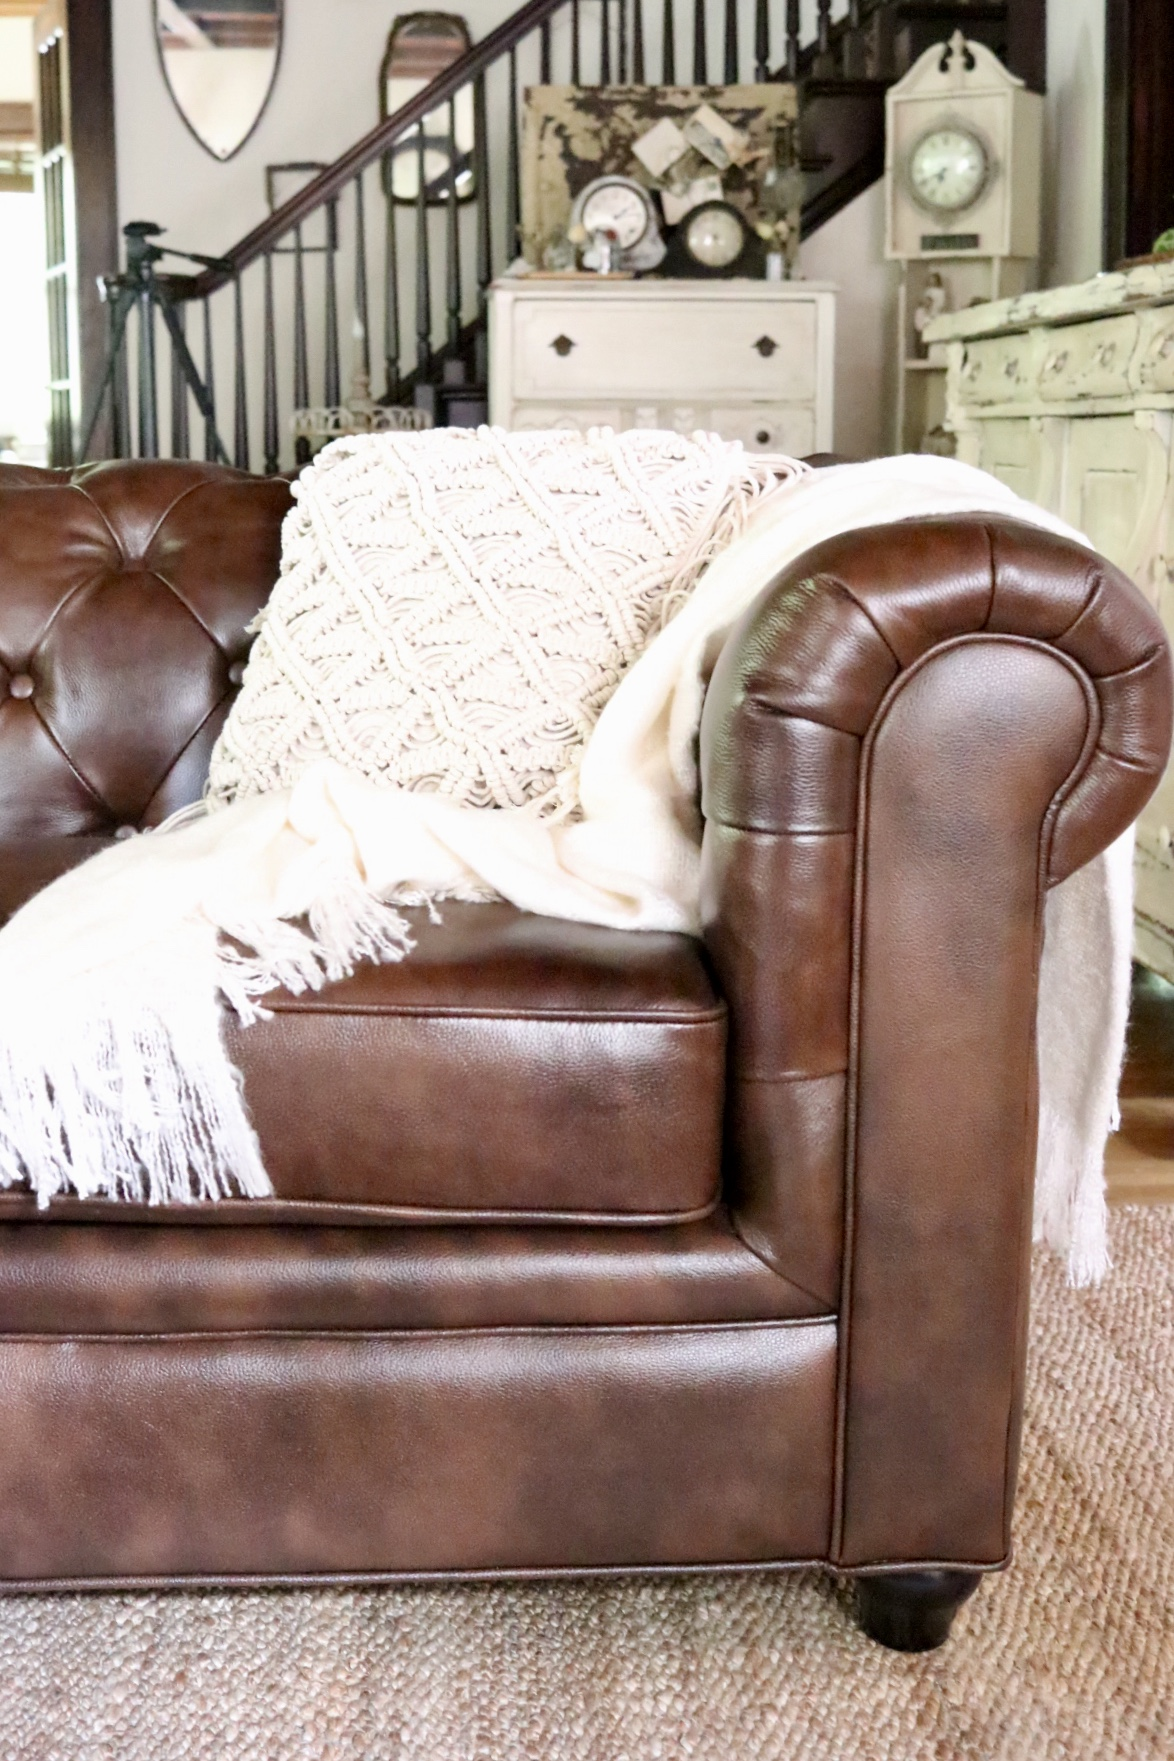 Beautiful Leather Chesterfield sofa macrame boho throw pillow neutral decor jute area rug from Soft Surroundings